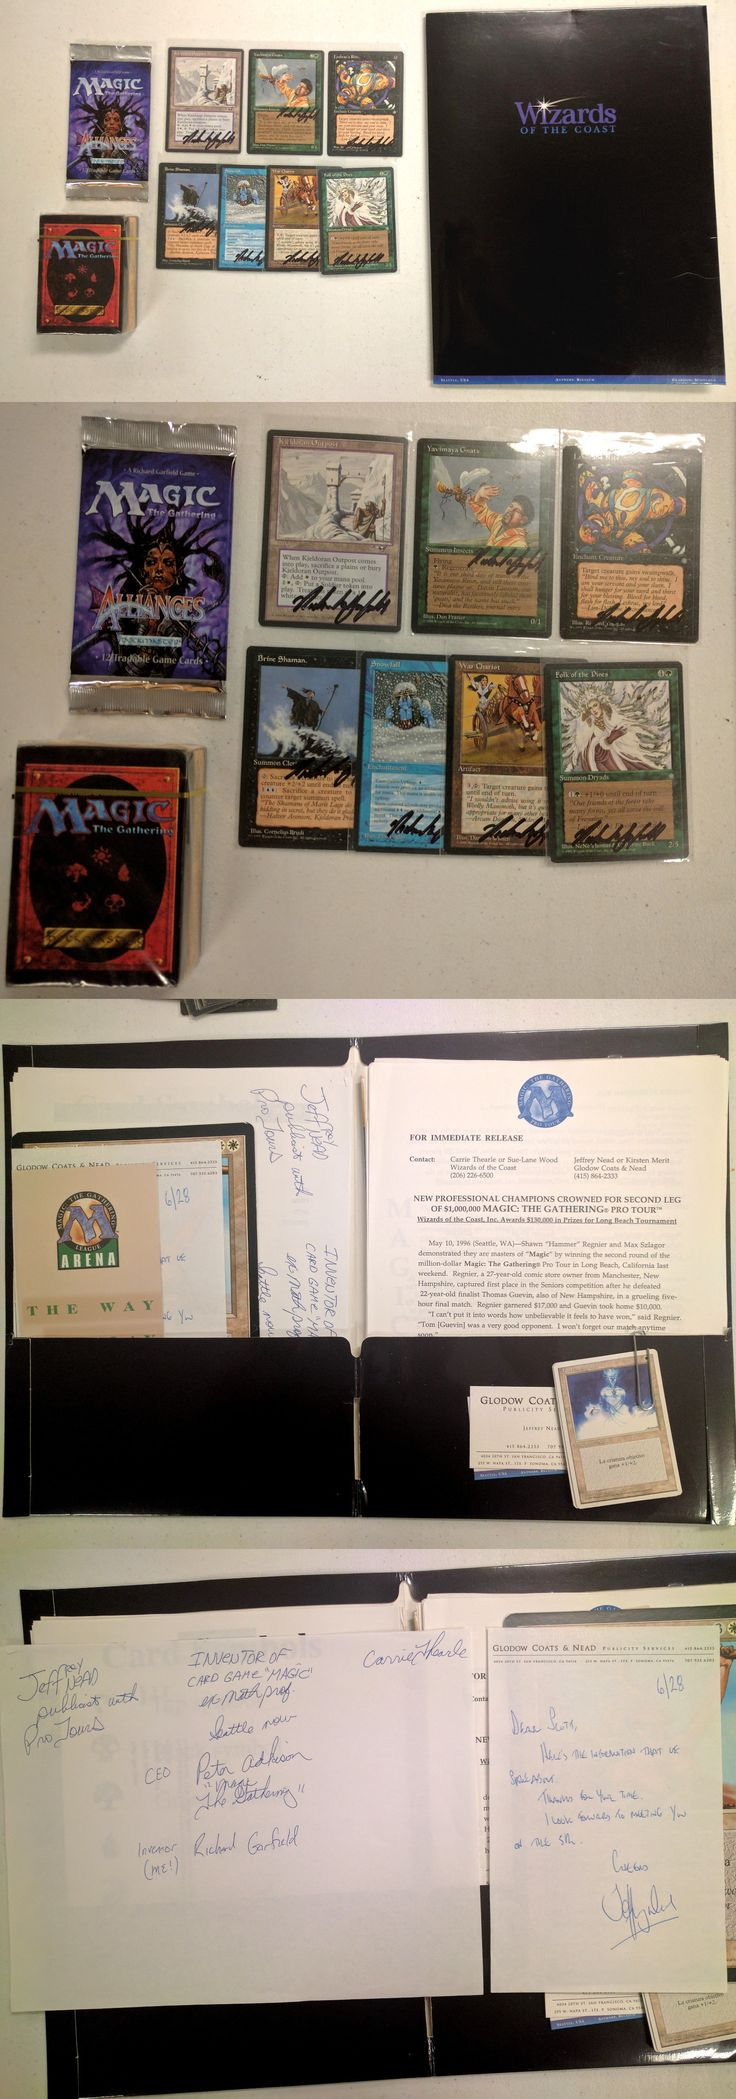 Other MTG Items 218: 1996 Wizard Of The Coast Press Kit Mtg Magic The Gathering Richard Garfield Rare -> BUY IT NOW ONLY: $349.99 on eBay!